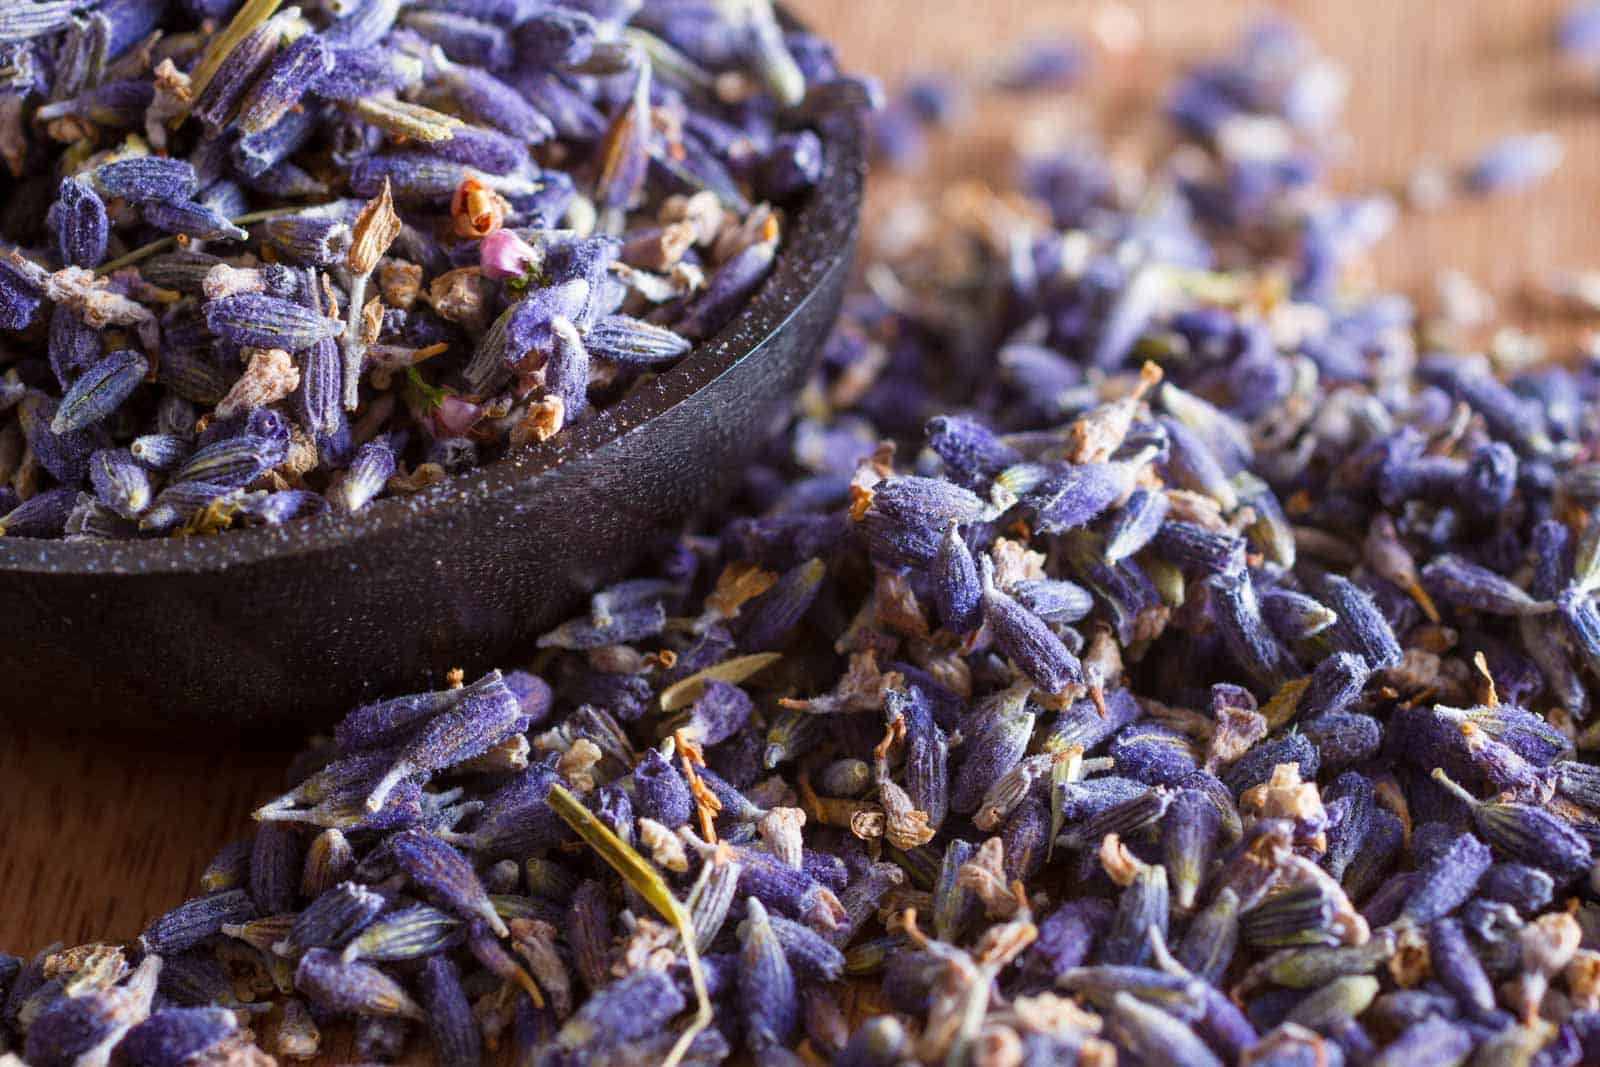 Free downloads from Piccia Neri. Dried lavender flowers.